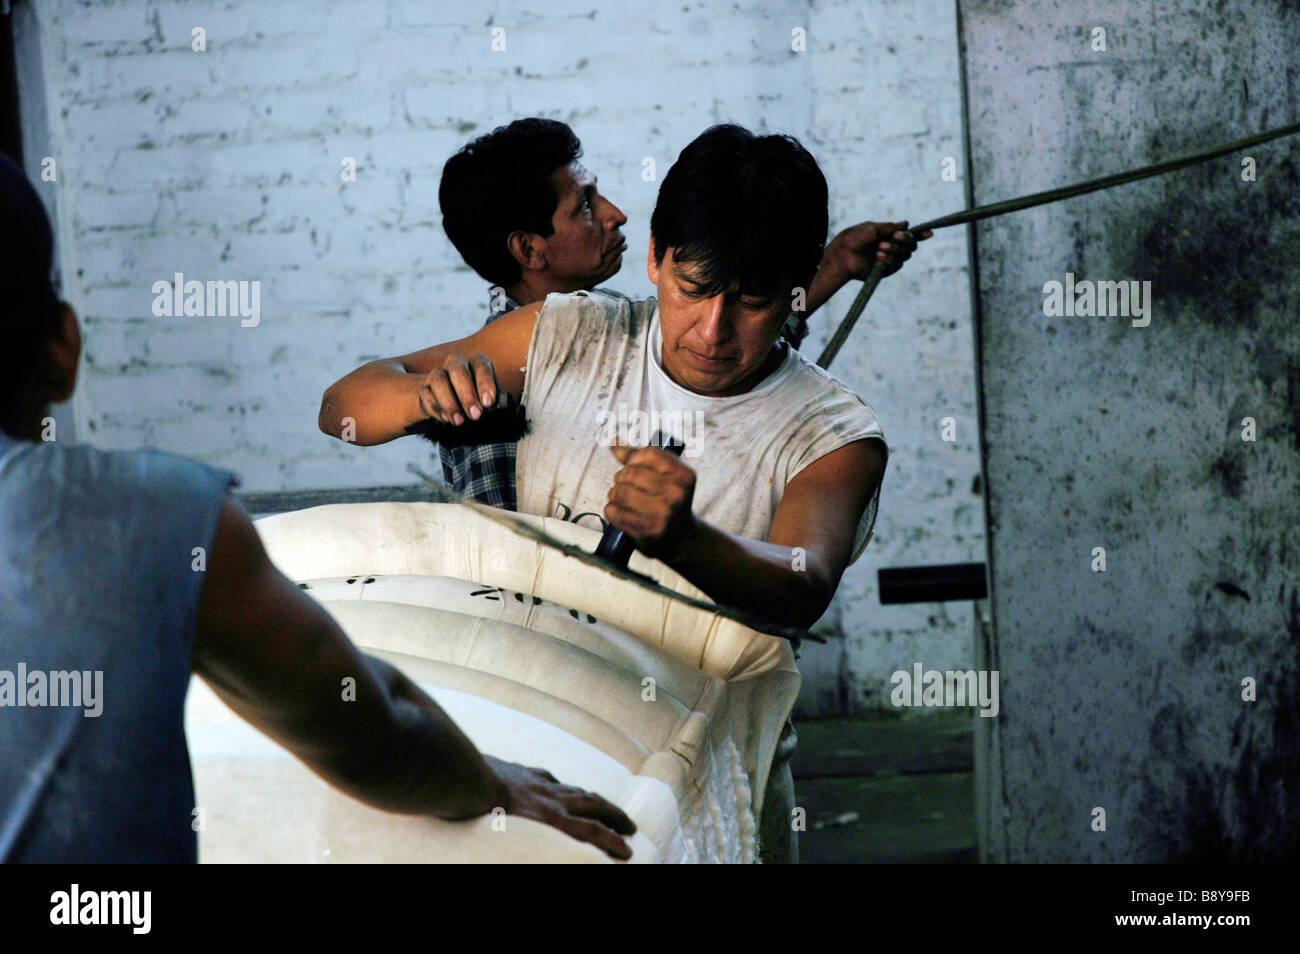 Man stamping, bail of cotton, behind him another man is pulling a rope - Stock Image